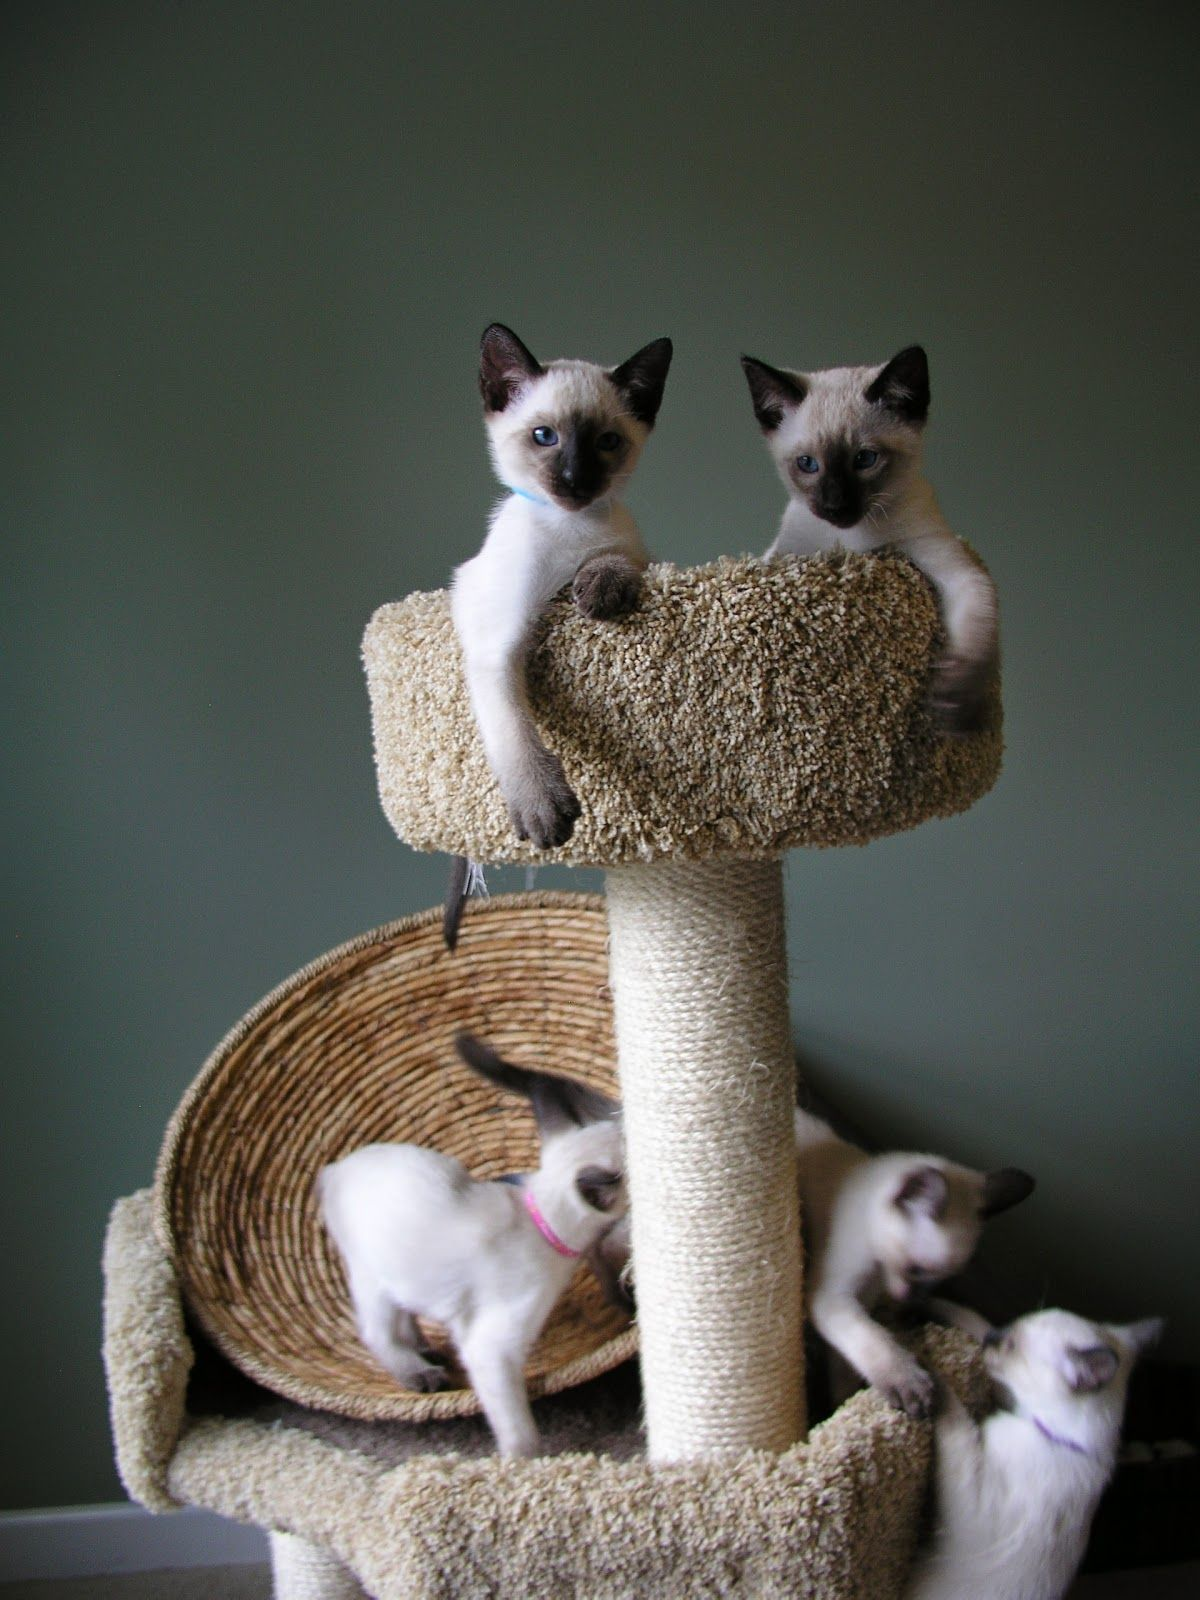 Breeders Of Siamese Kittens Available For Sale Siamese Kittens Raised In Our Loving Home Siamese Kittens Cute Cats And Kittens Cats